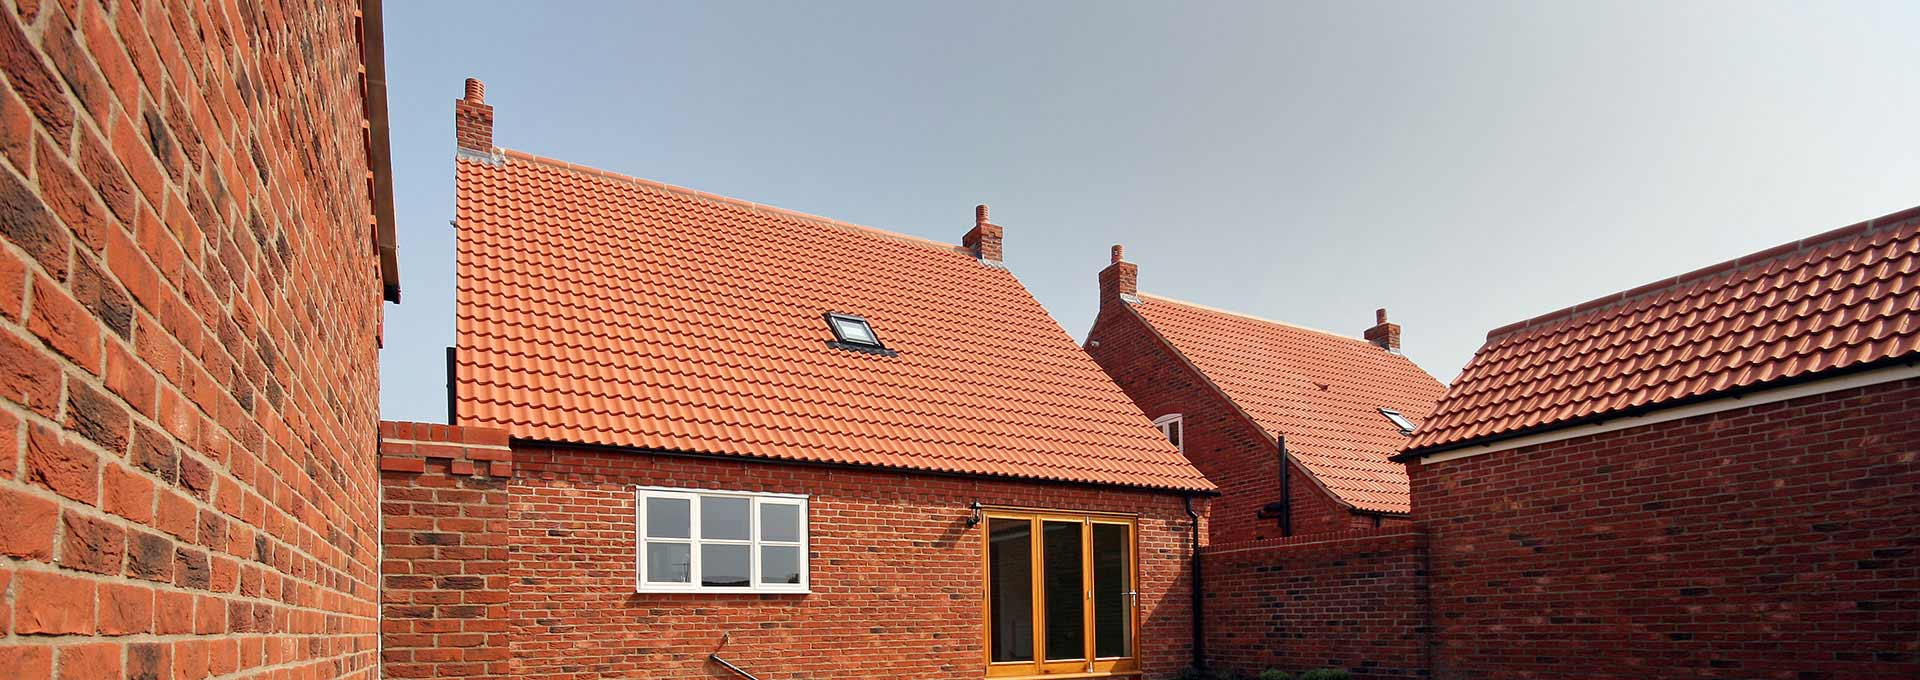 Home MJB Roofing